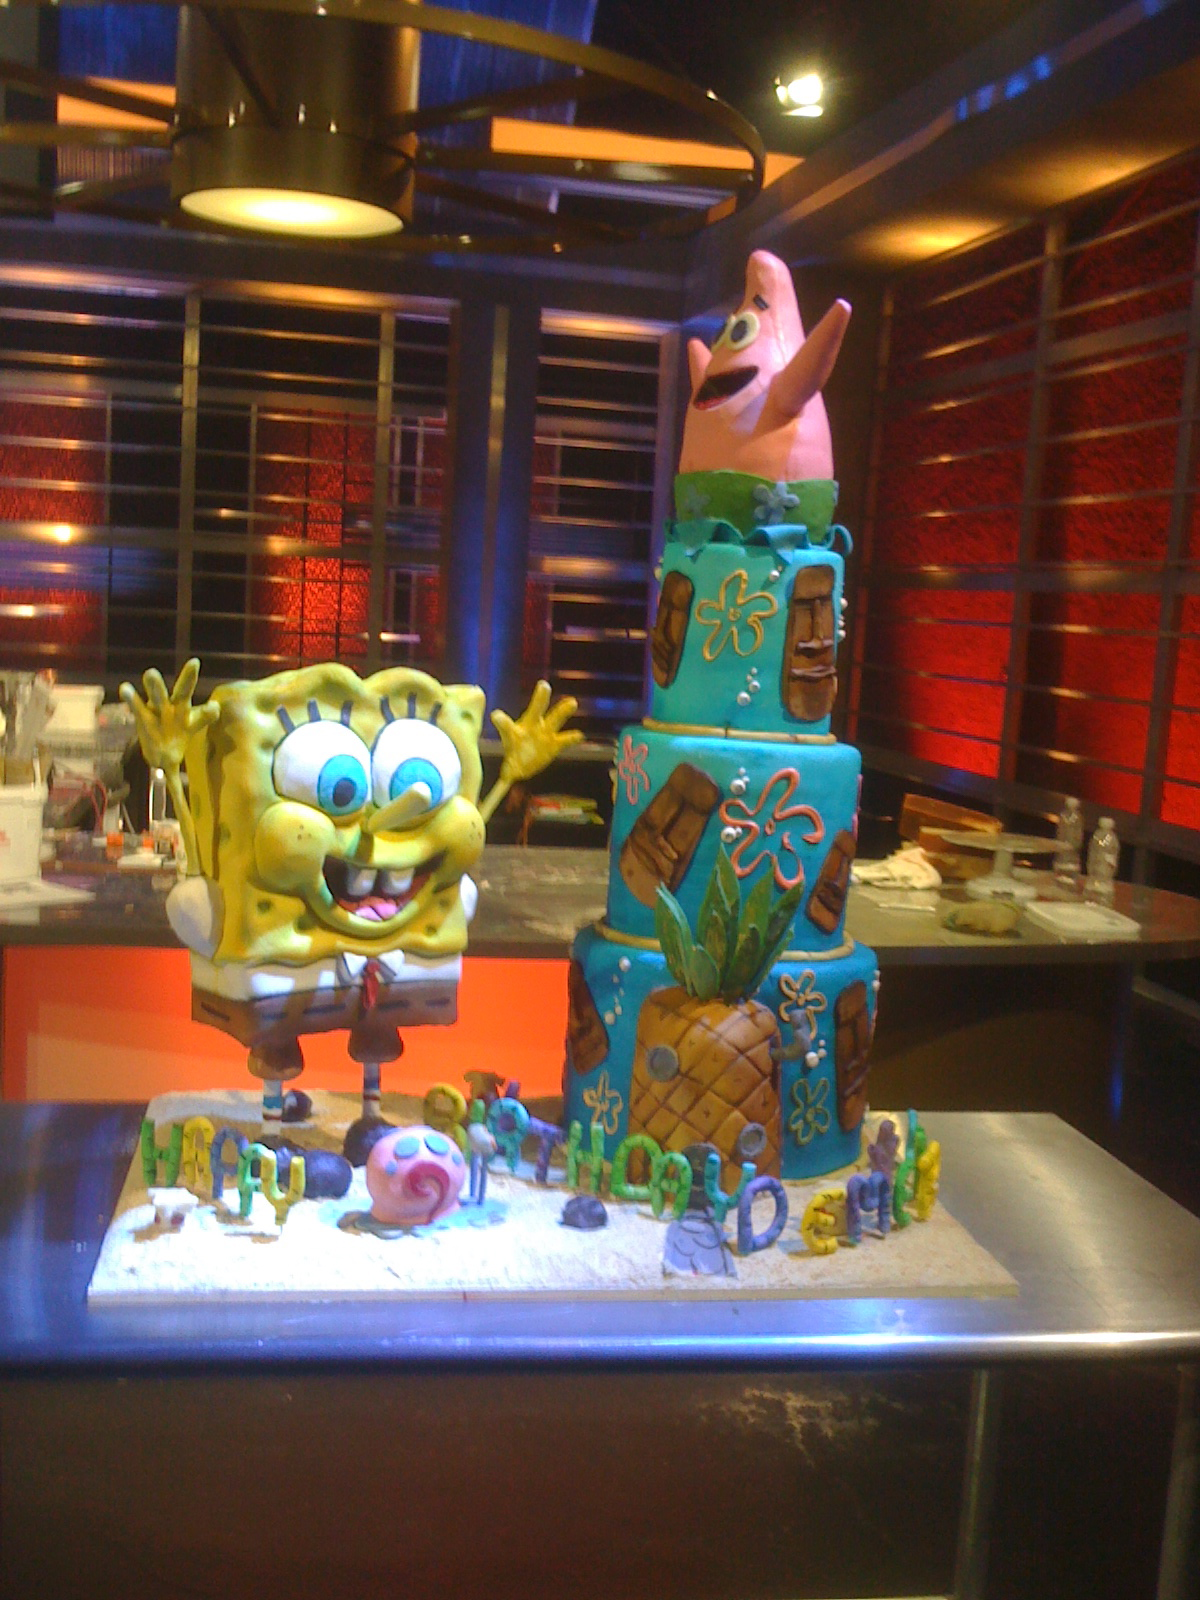 SpongeBob cake for Food Network Challenge